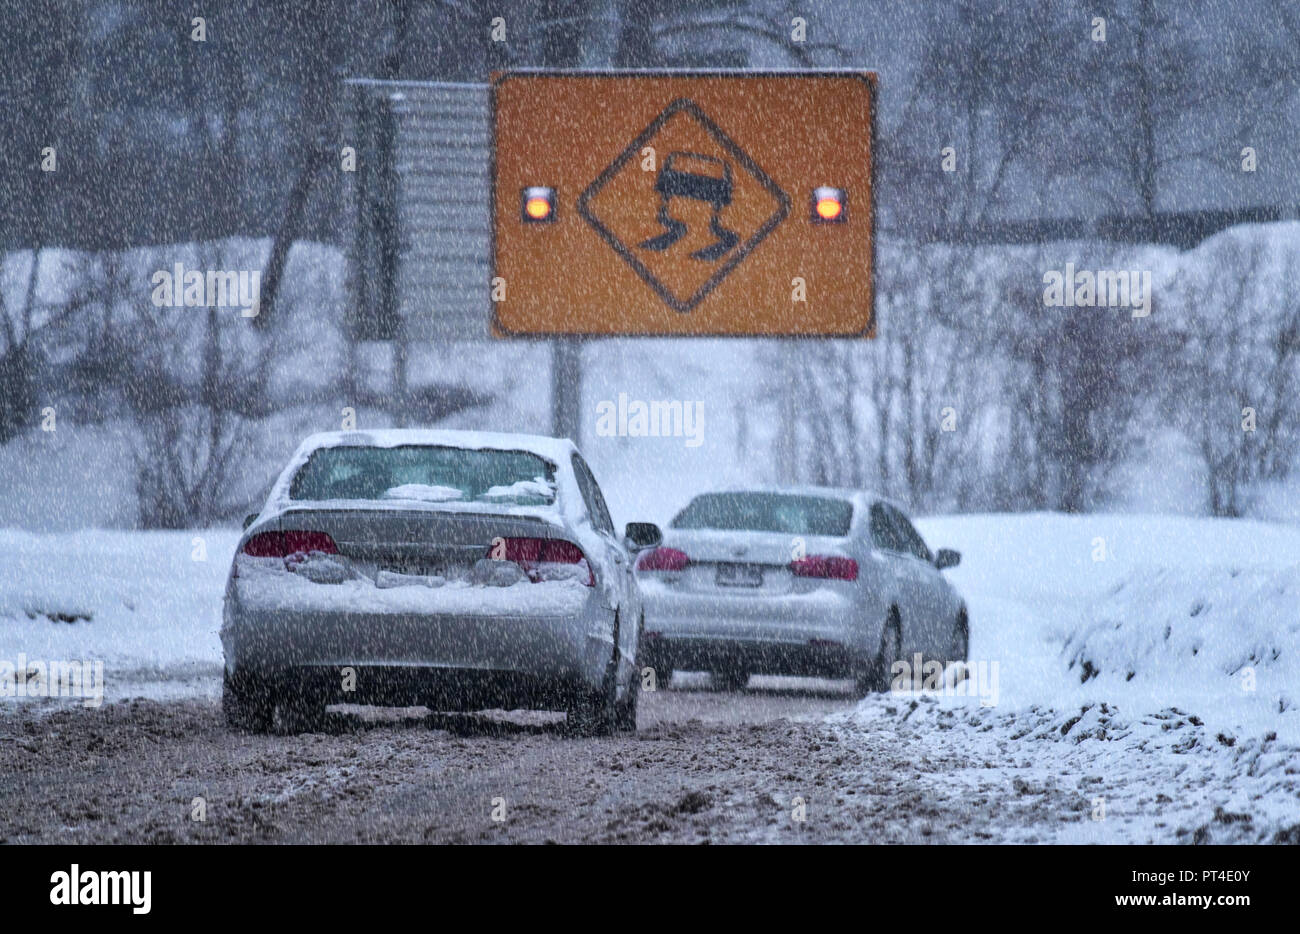 Montreal,Canada, 3 February 2018. Sign indicating slippery road condidtions during snowstorm.Credit:Mario Beauregard/Alamy Live News - Stock Image